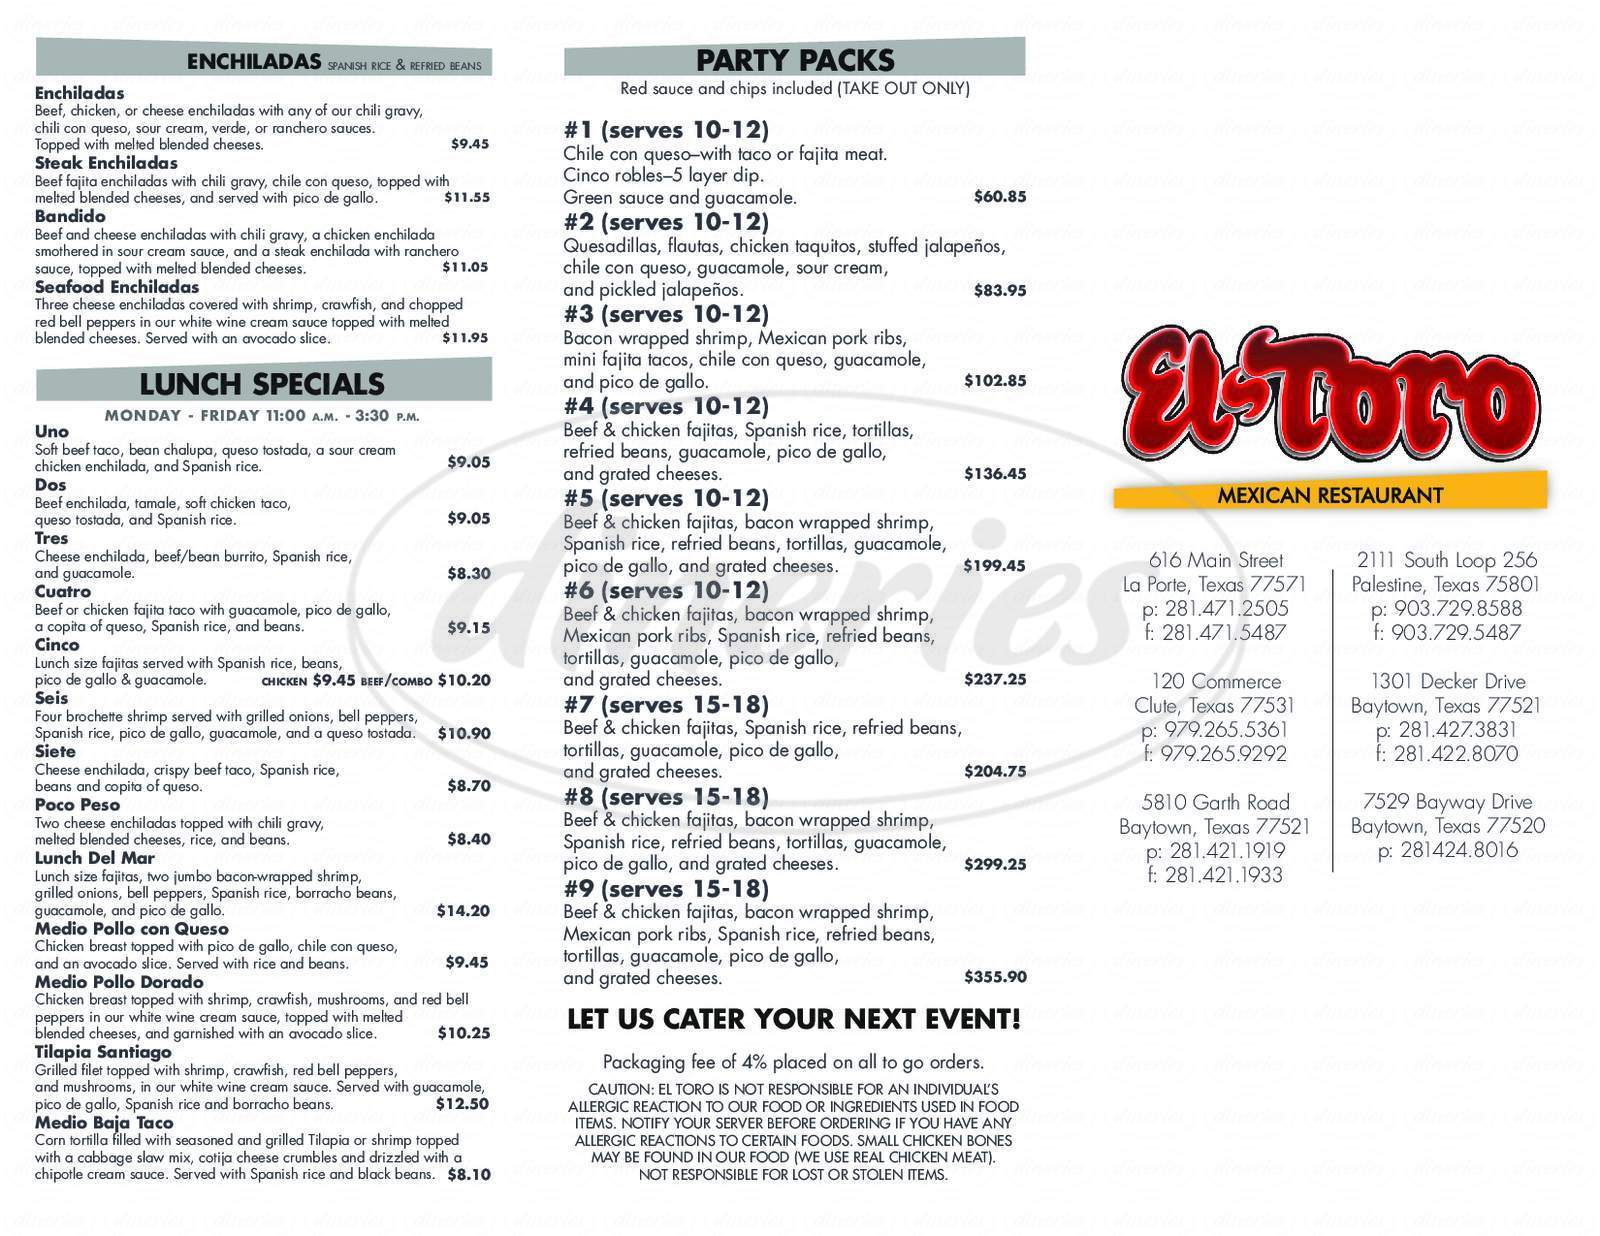 menu for El Toro Mexican Restaurant